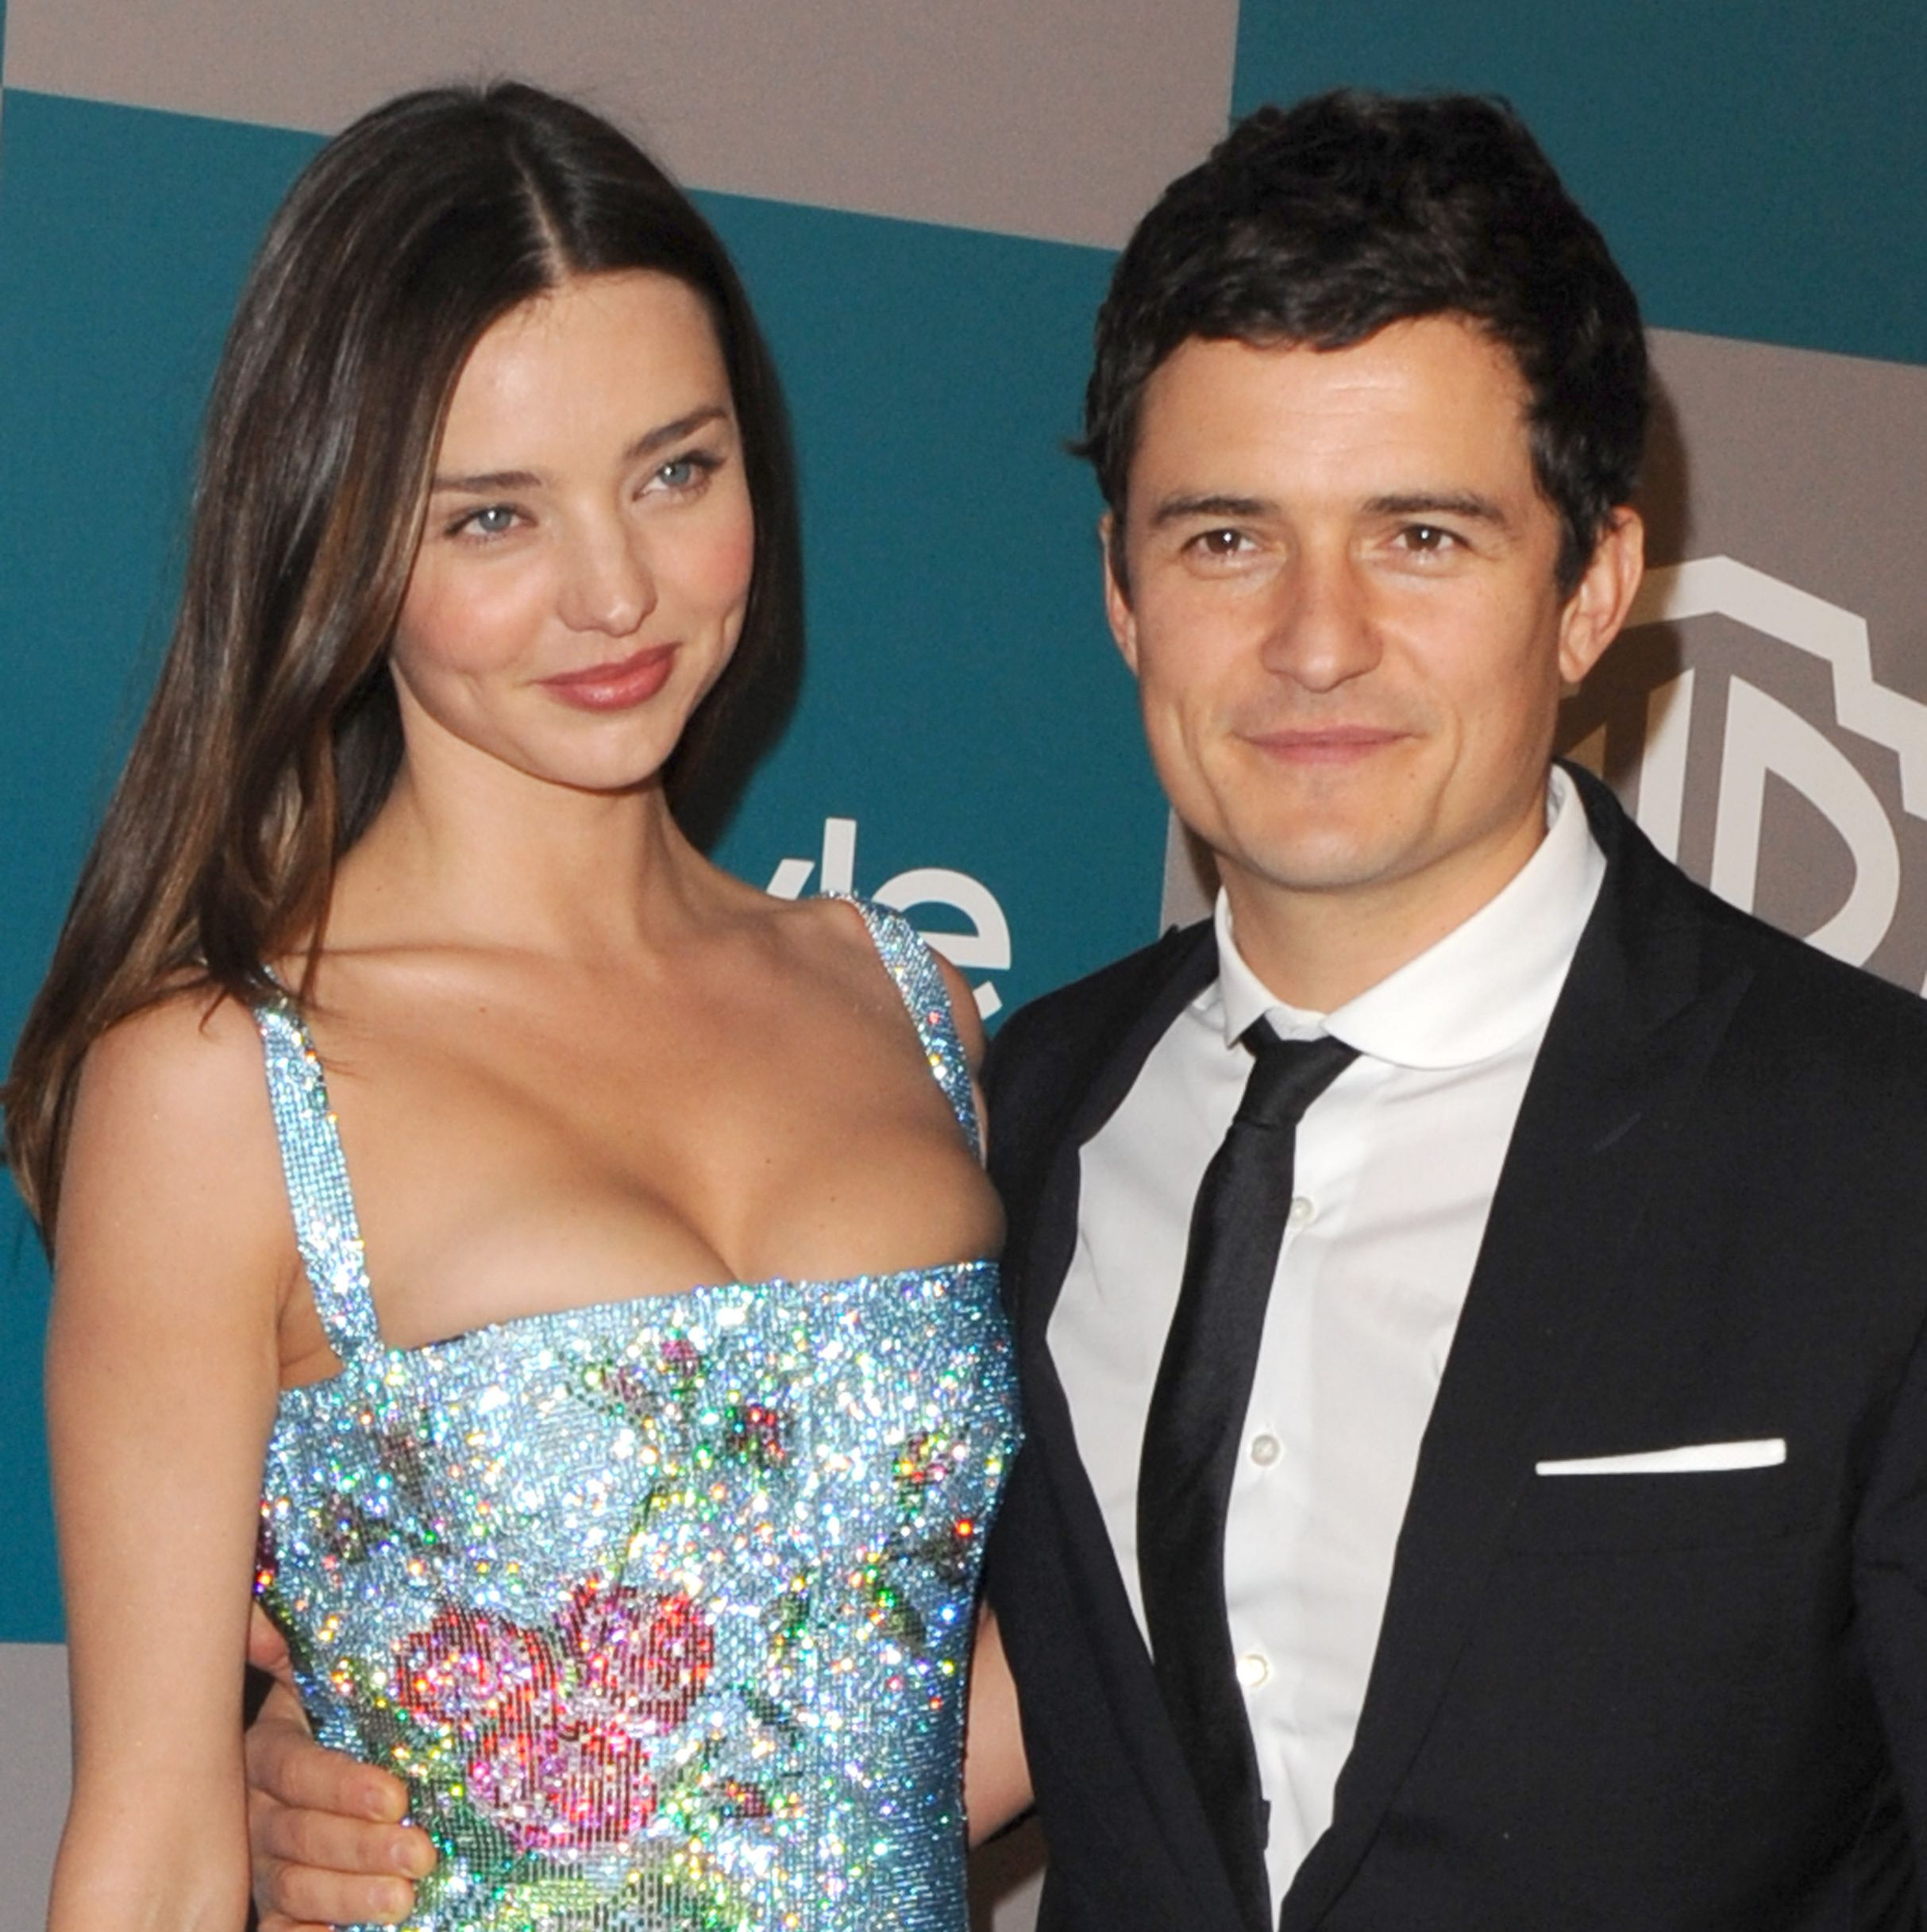 Orlando Bloom and Miranda Kerr Orlando and Miranda were quite possibly the world's most gorgeous couple when they got together in 2007. The couple got engaged and married in 2010, and welcomed their son Flynn in early 2011.